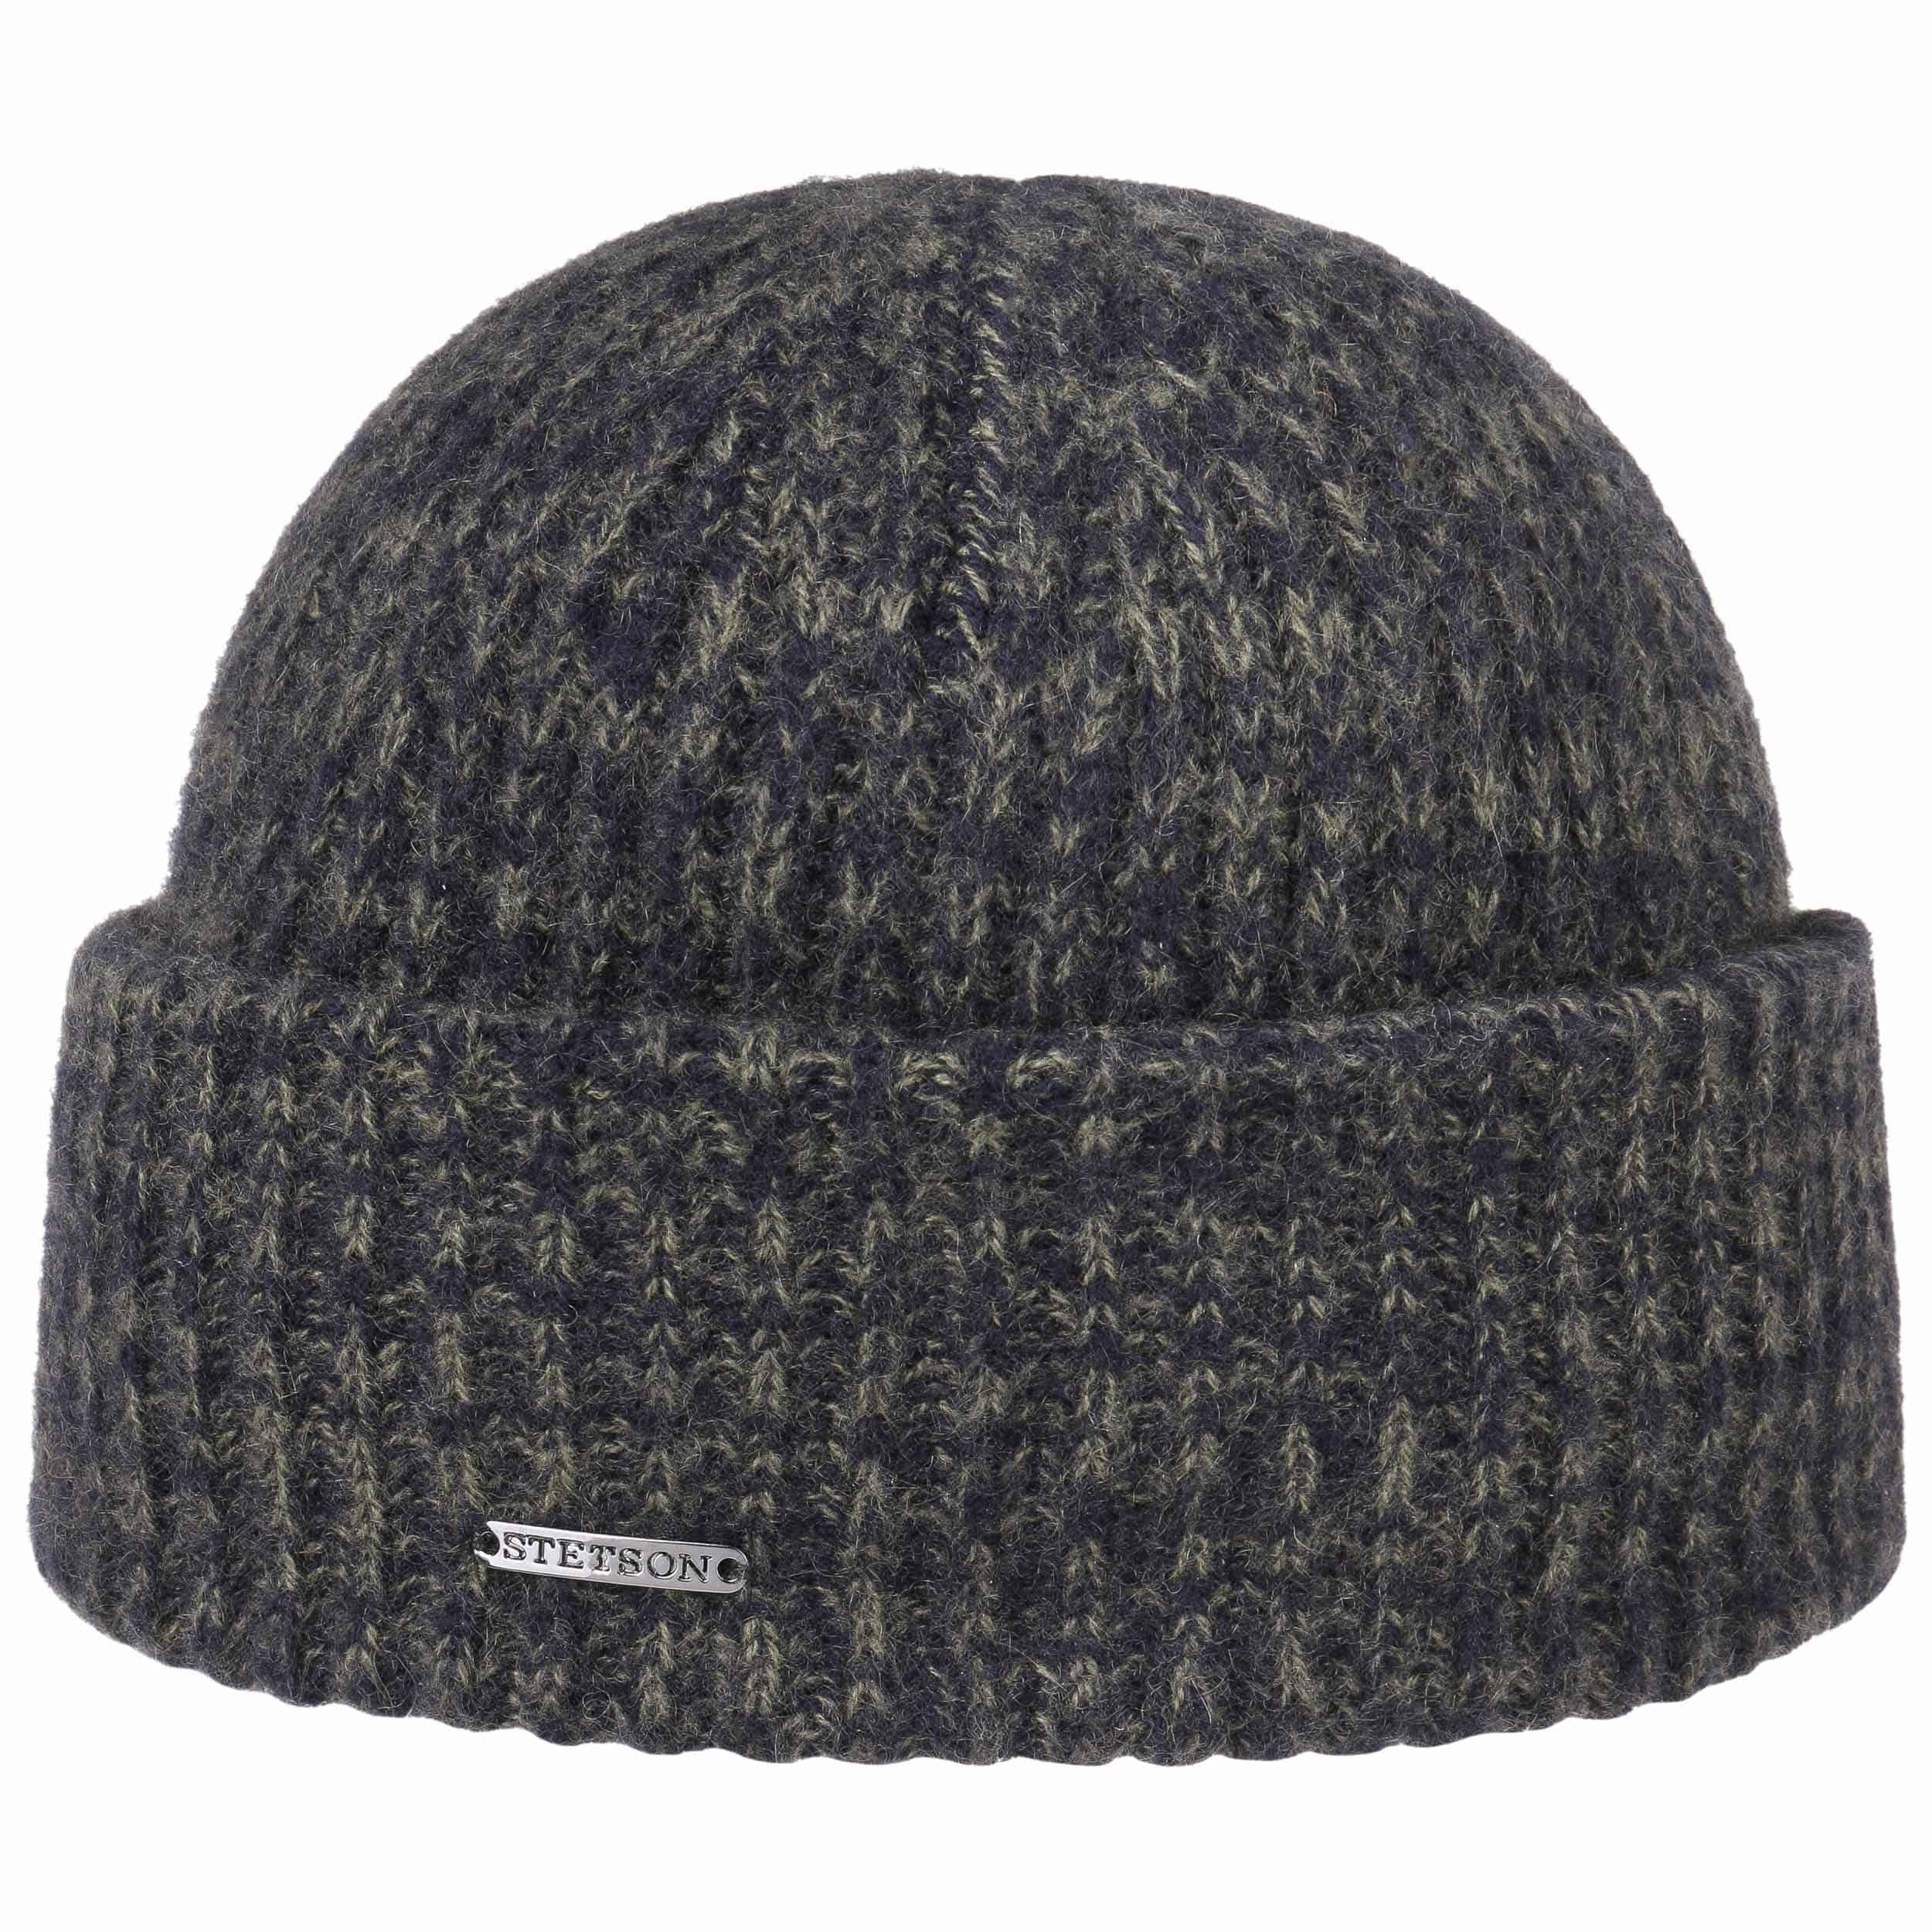 Surth Mélange Cashmere Pull on Hat blue-olive